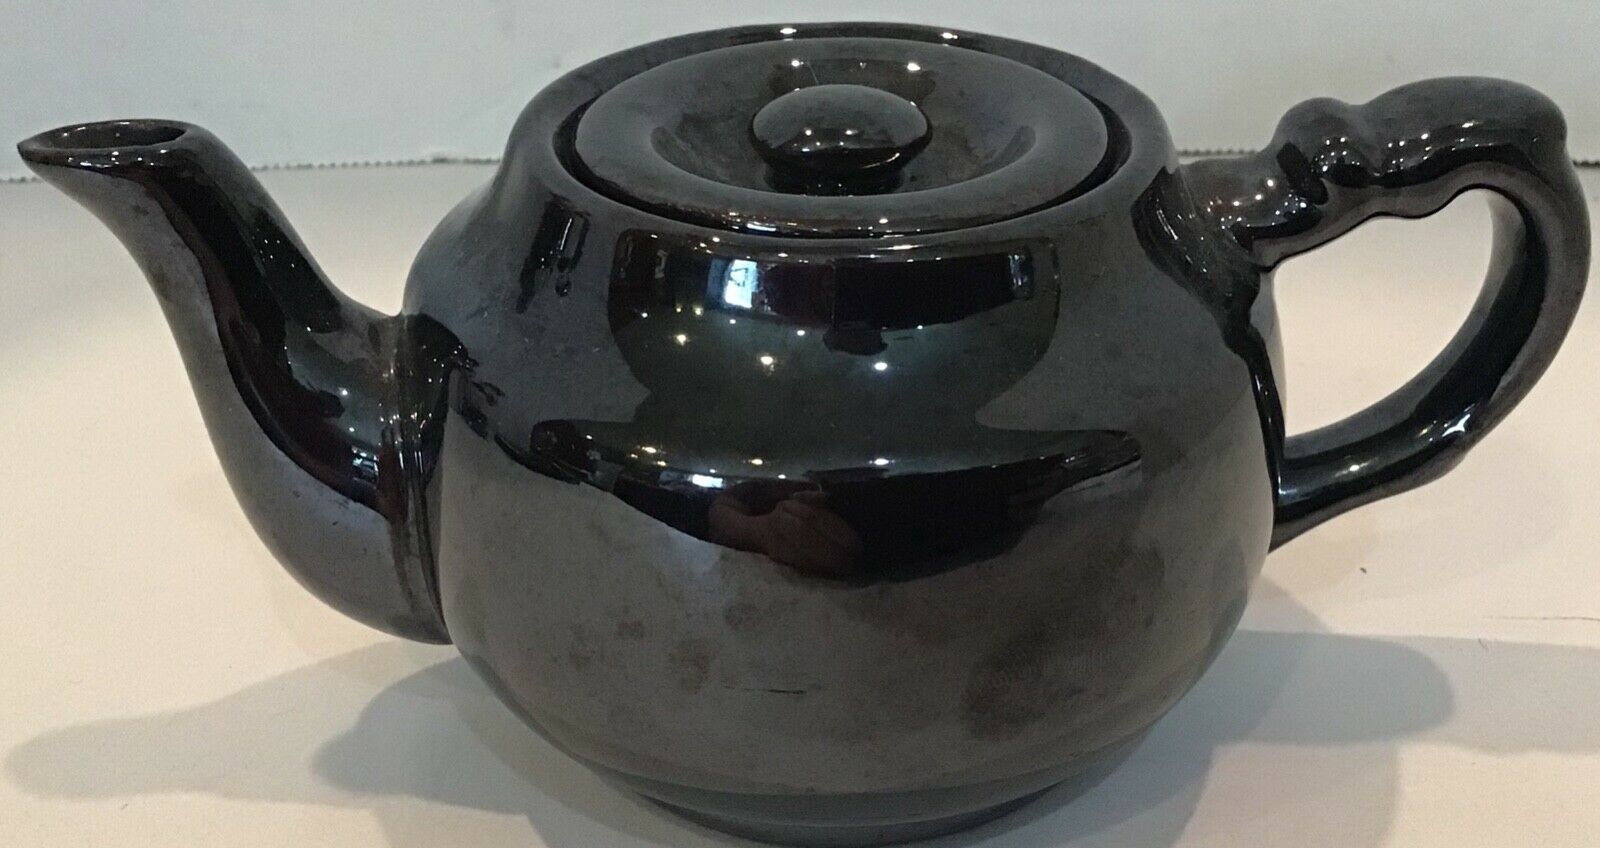 IRIDESCENT BROWN TEA POT WITH LID POSSIBLY HADSON? (OCCUPIED JAPAN) Ceramic